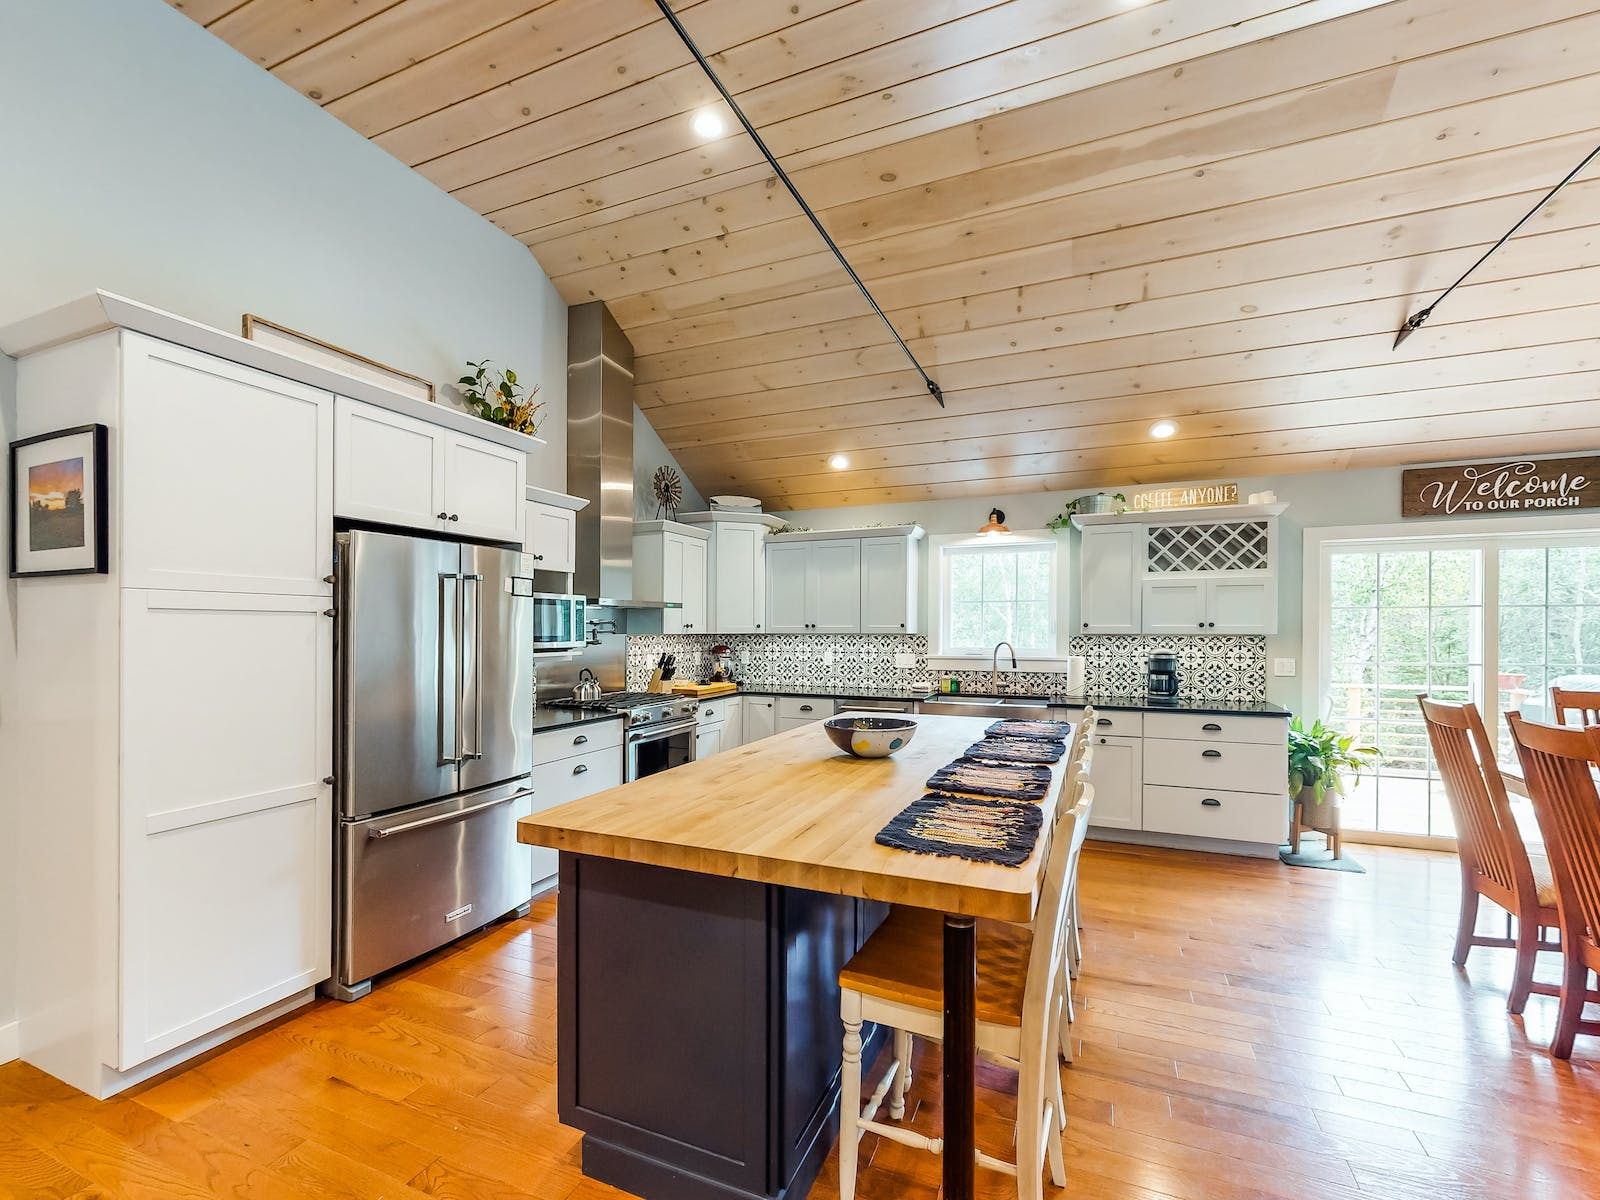 airy, open kitchen with tiled backsplash, stainless steel appliances, and a spacious island